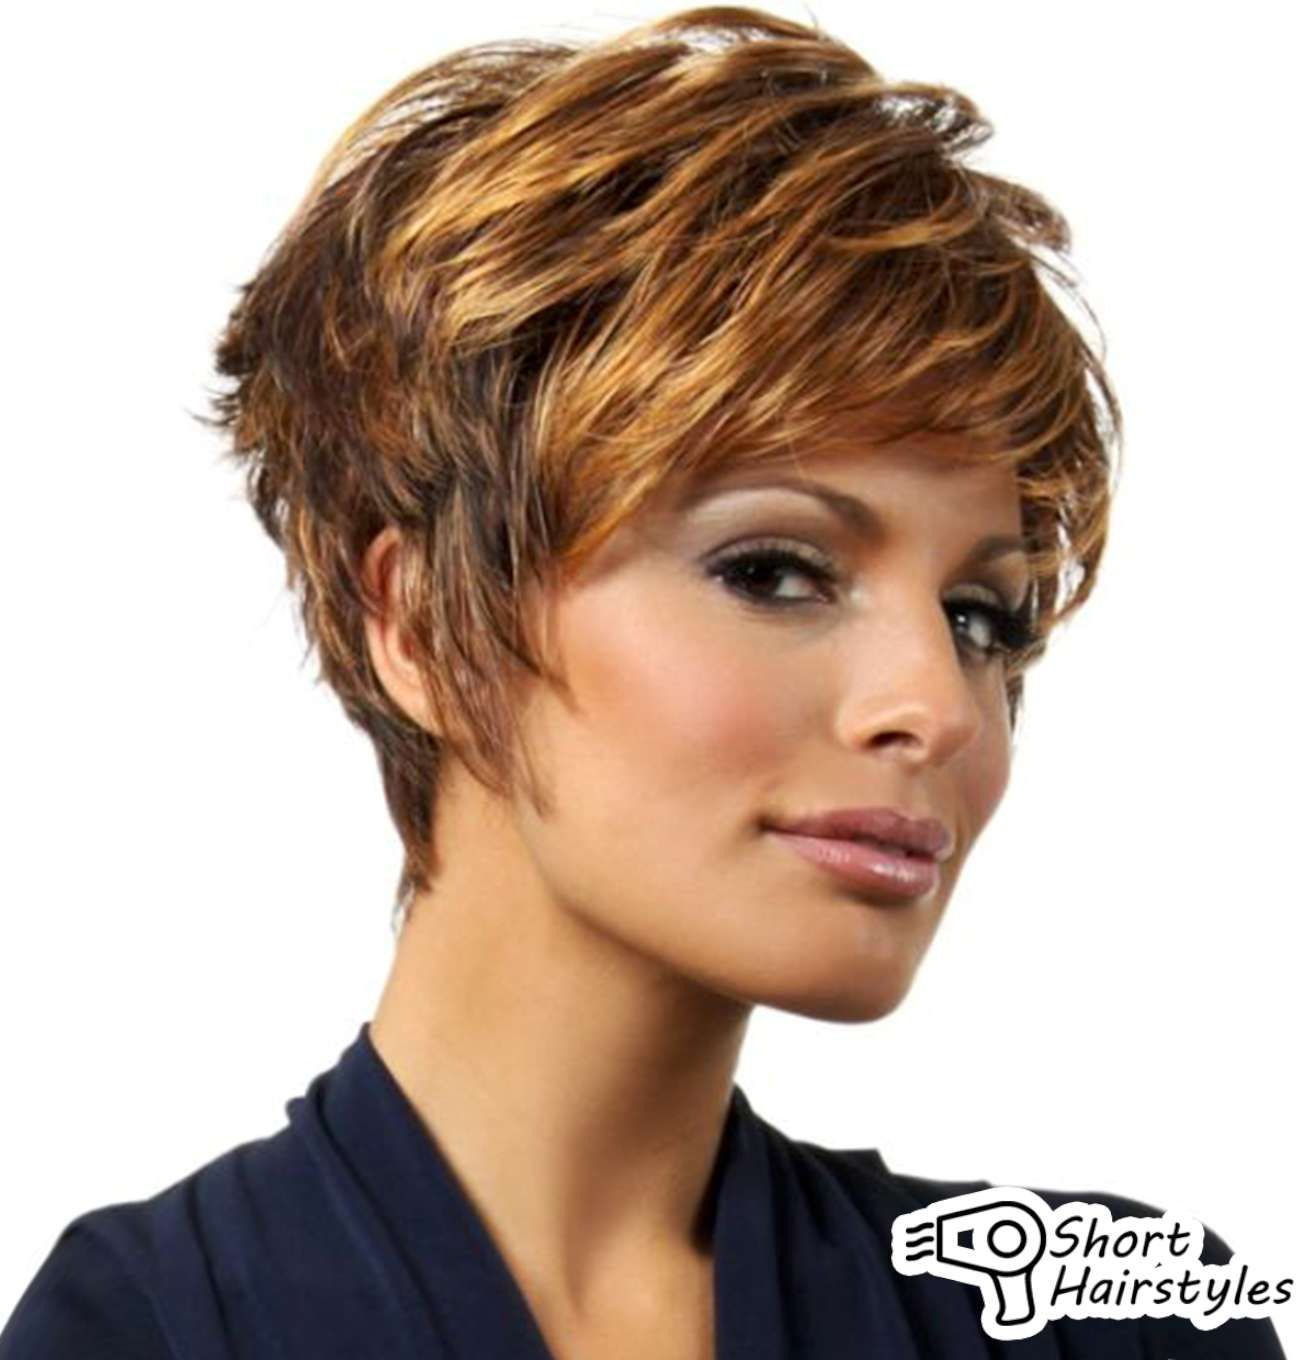 short hairstyles for thick hair 2015 is troublesome in terms of